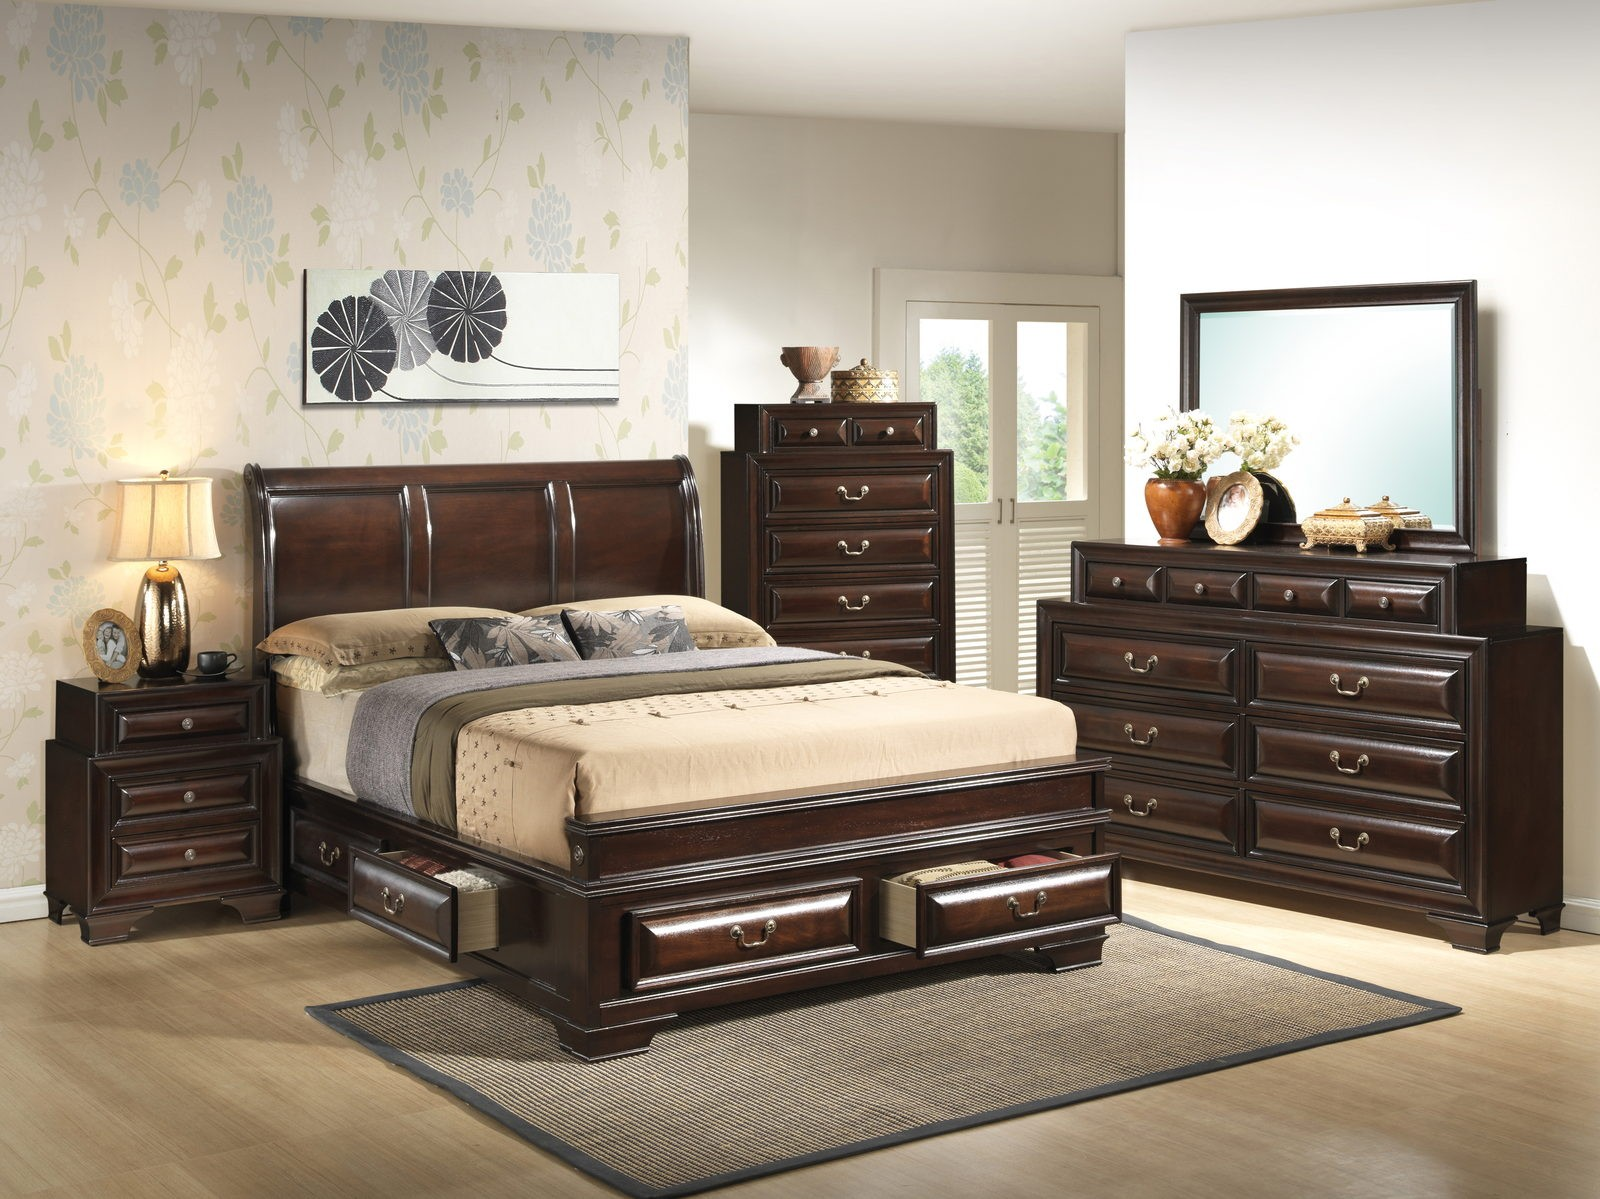 Glory Furniture G8875 Six Drawer Bedroom Set In Cappuccino